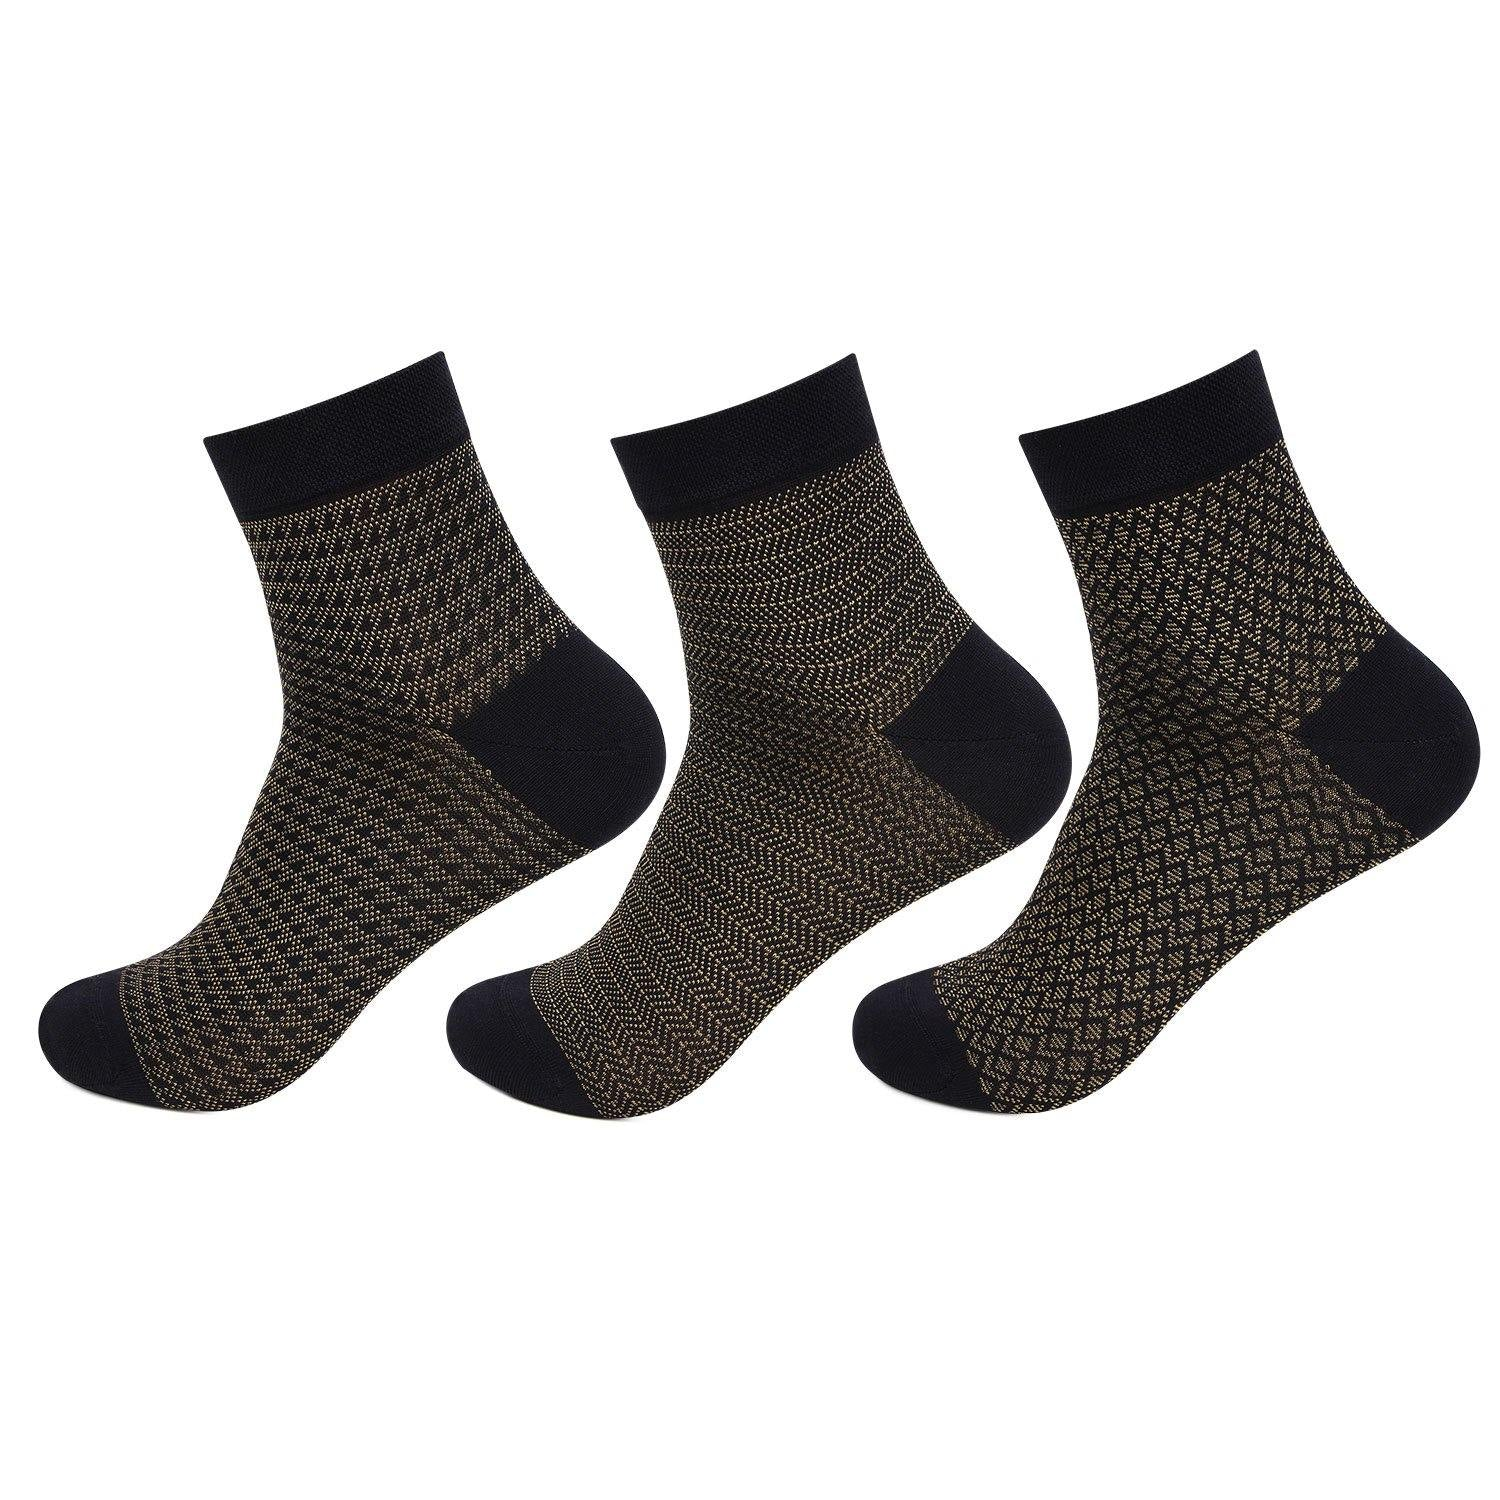 Hush Puppies Men's Mercerized Cotton Ankle Socks - Pack of 3